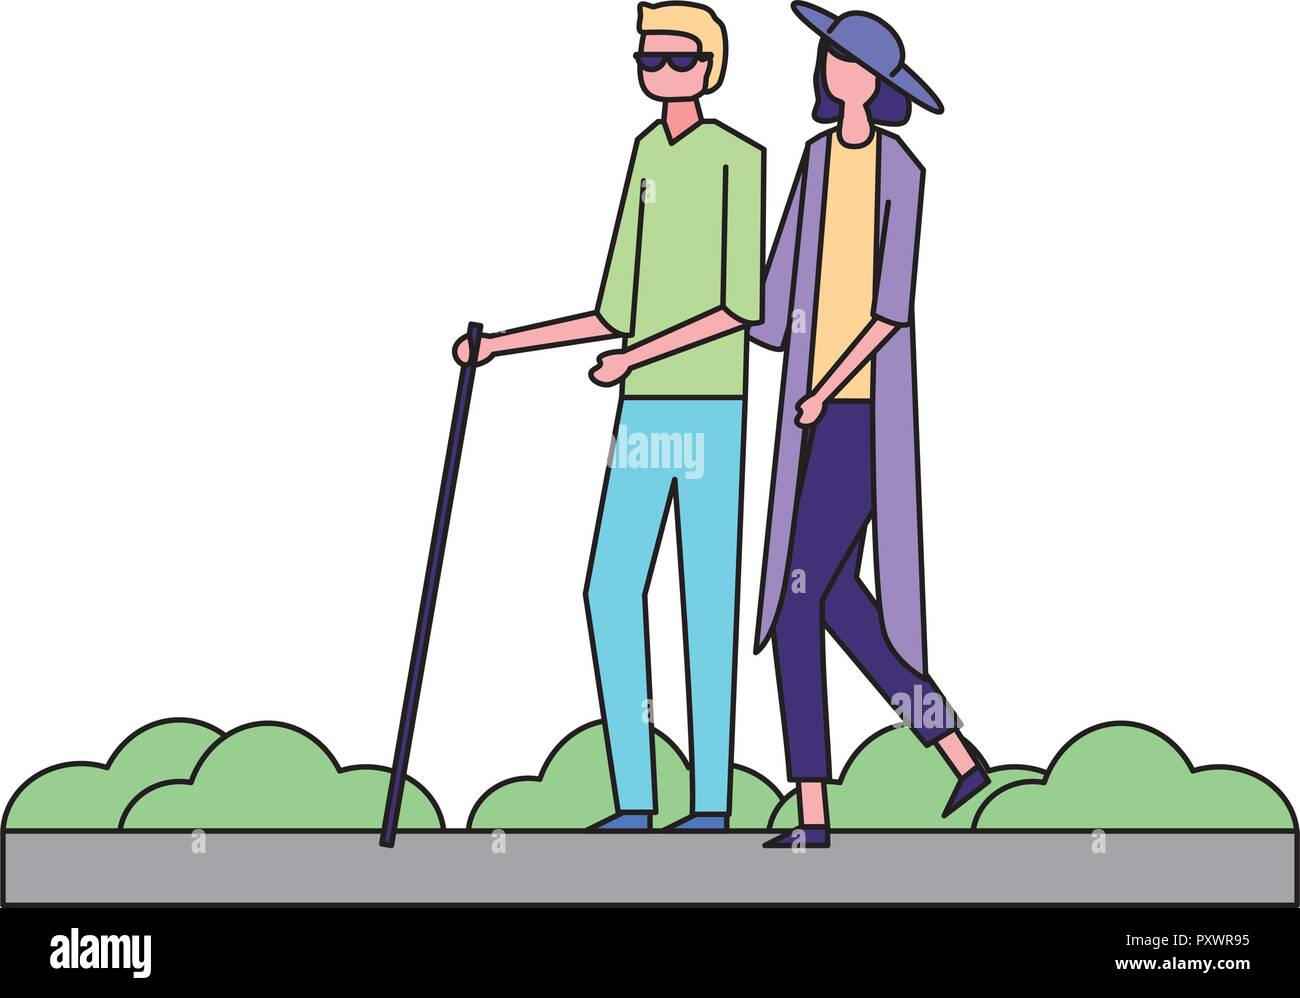 volunteers help woman carry blind person in the street vector illustration - Stock Vector